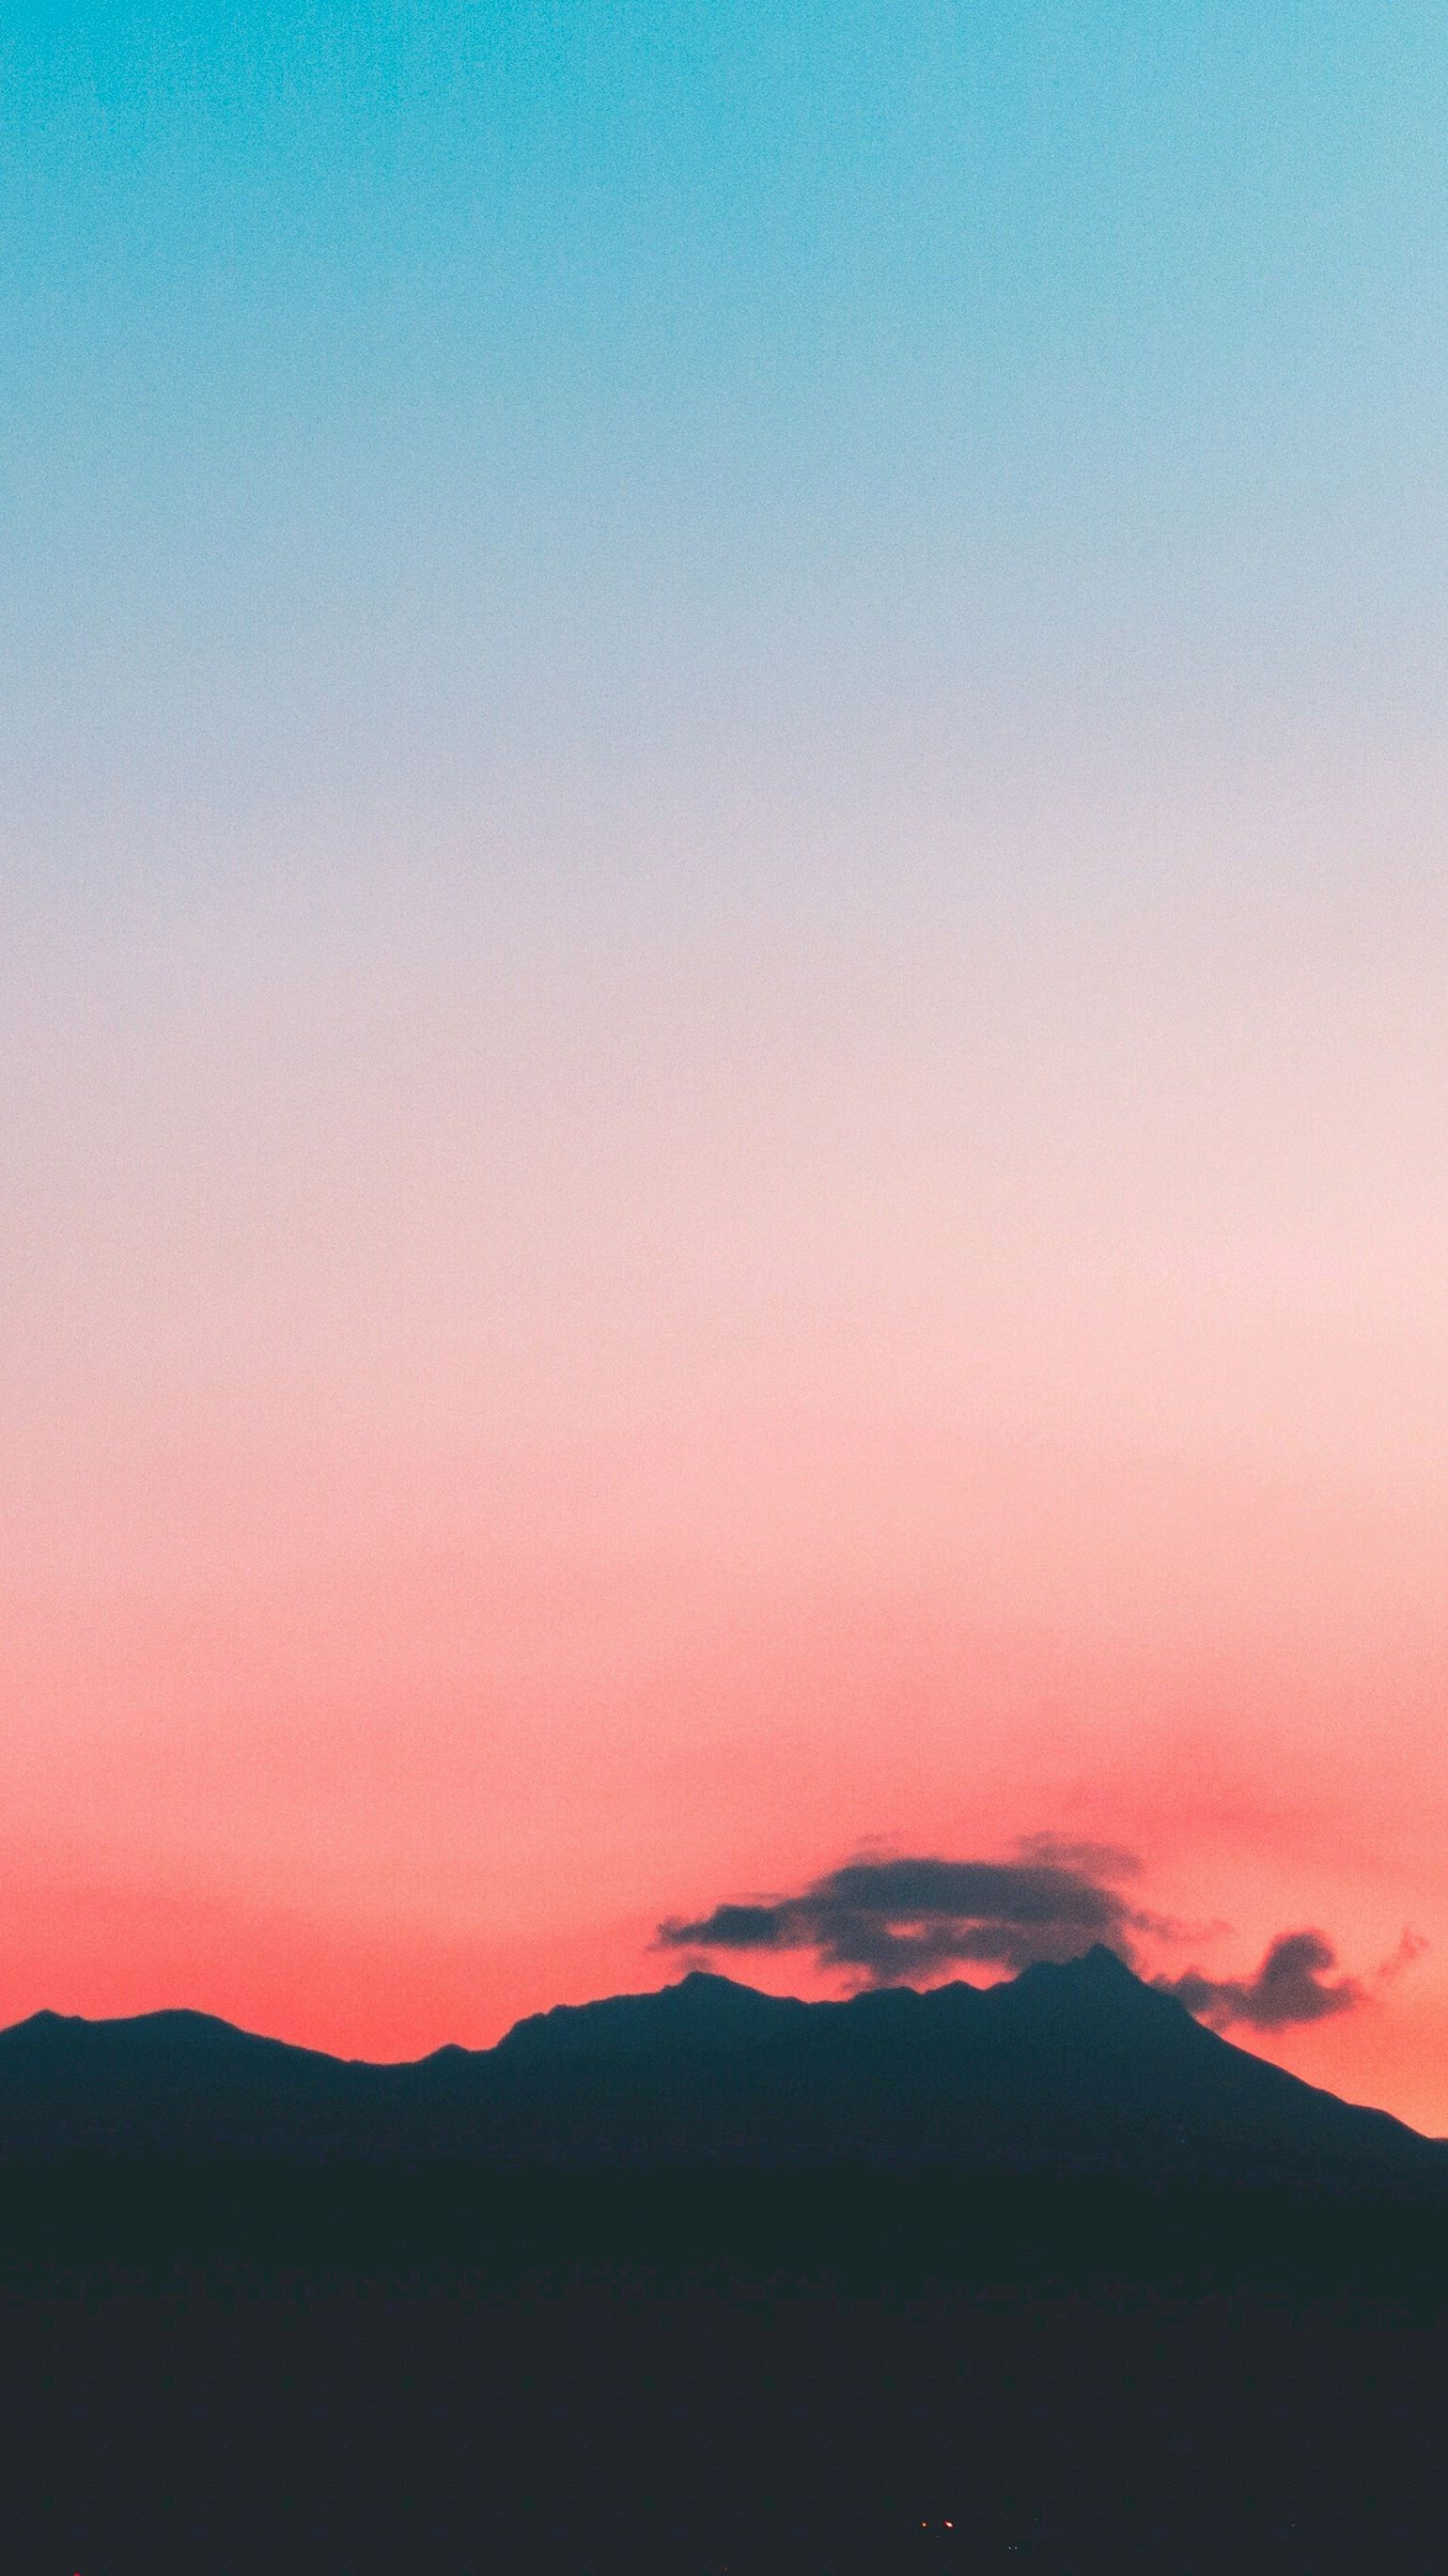 Blue Sky Clouds Mountains Sunrise iPhone Wallpaper iphoneswallpapers com